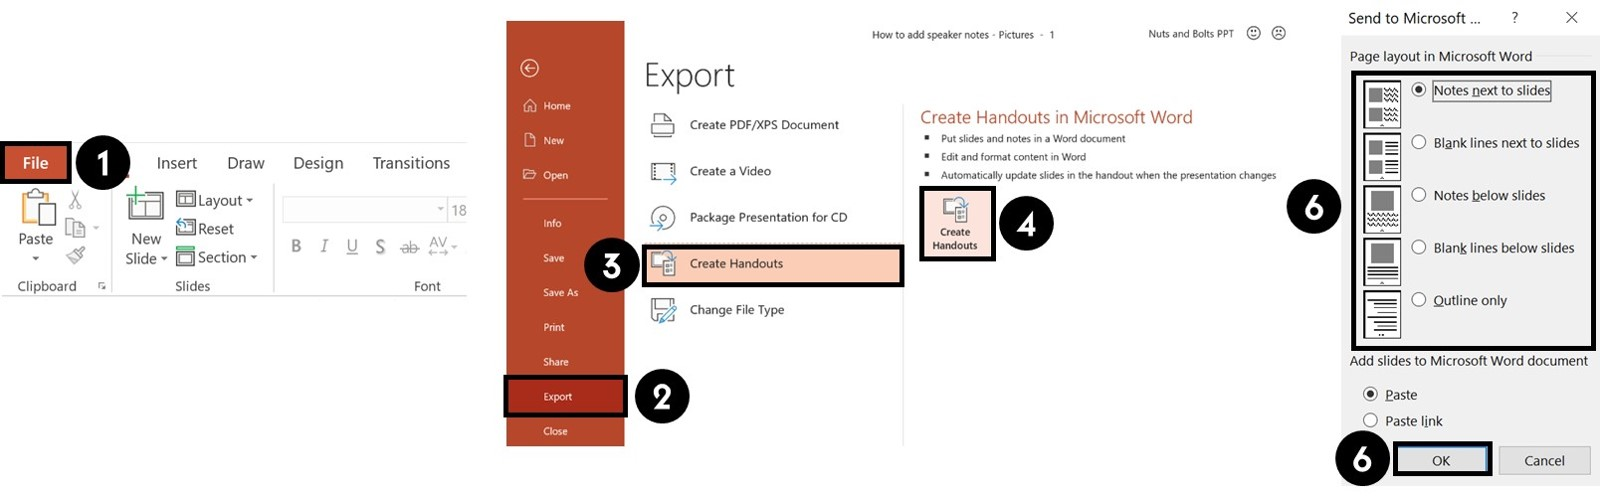 You can export your notes to Microsoft Word through using the Create Handout command